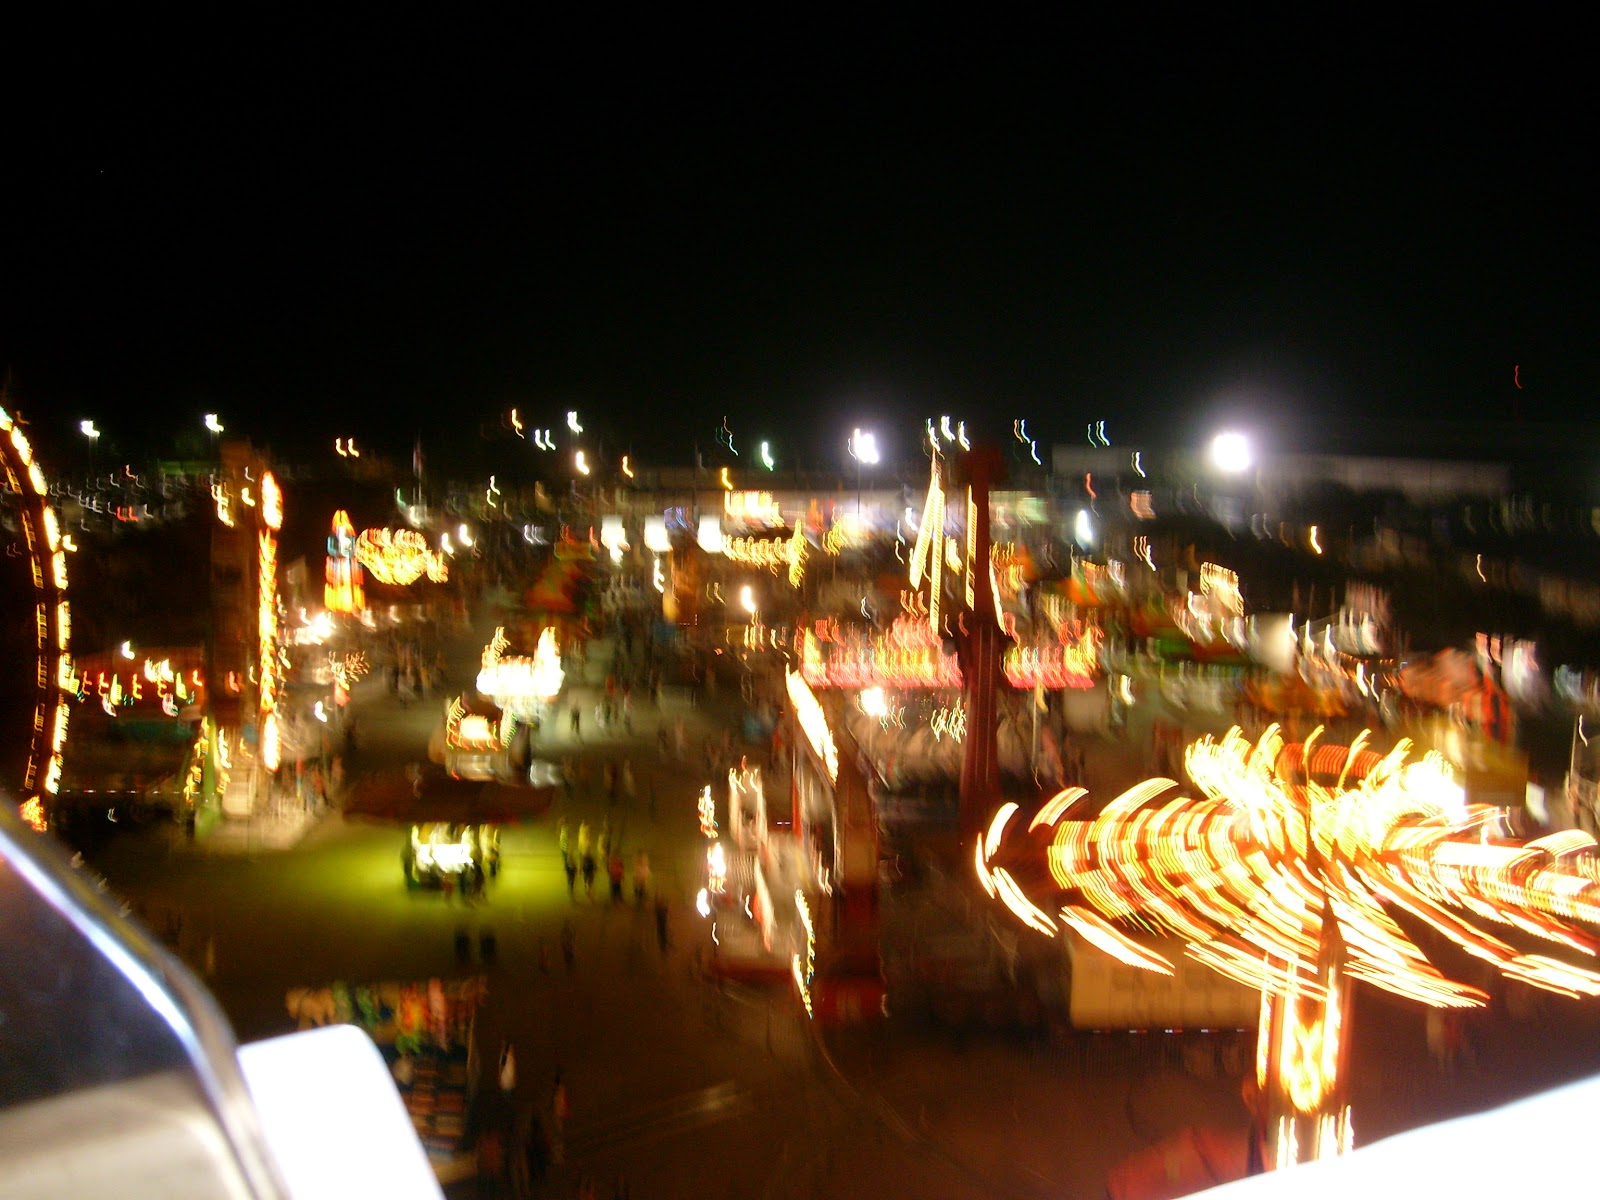 Fort Bend County Fair 2007 - S7300512.JPG